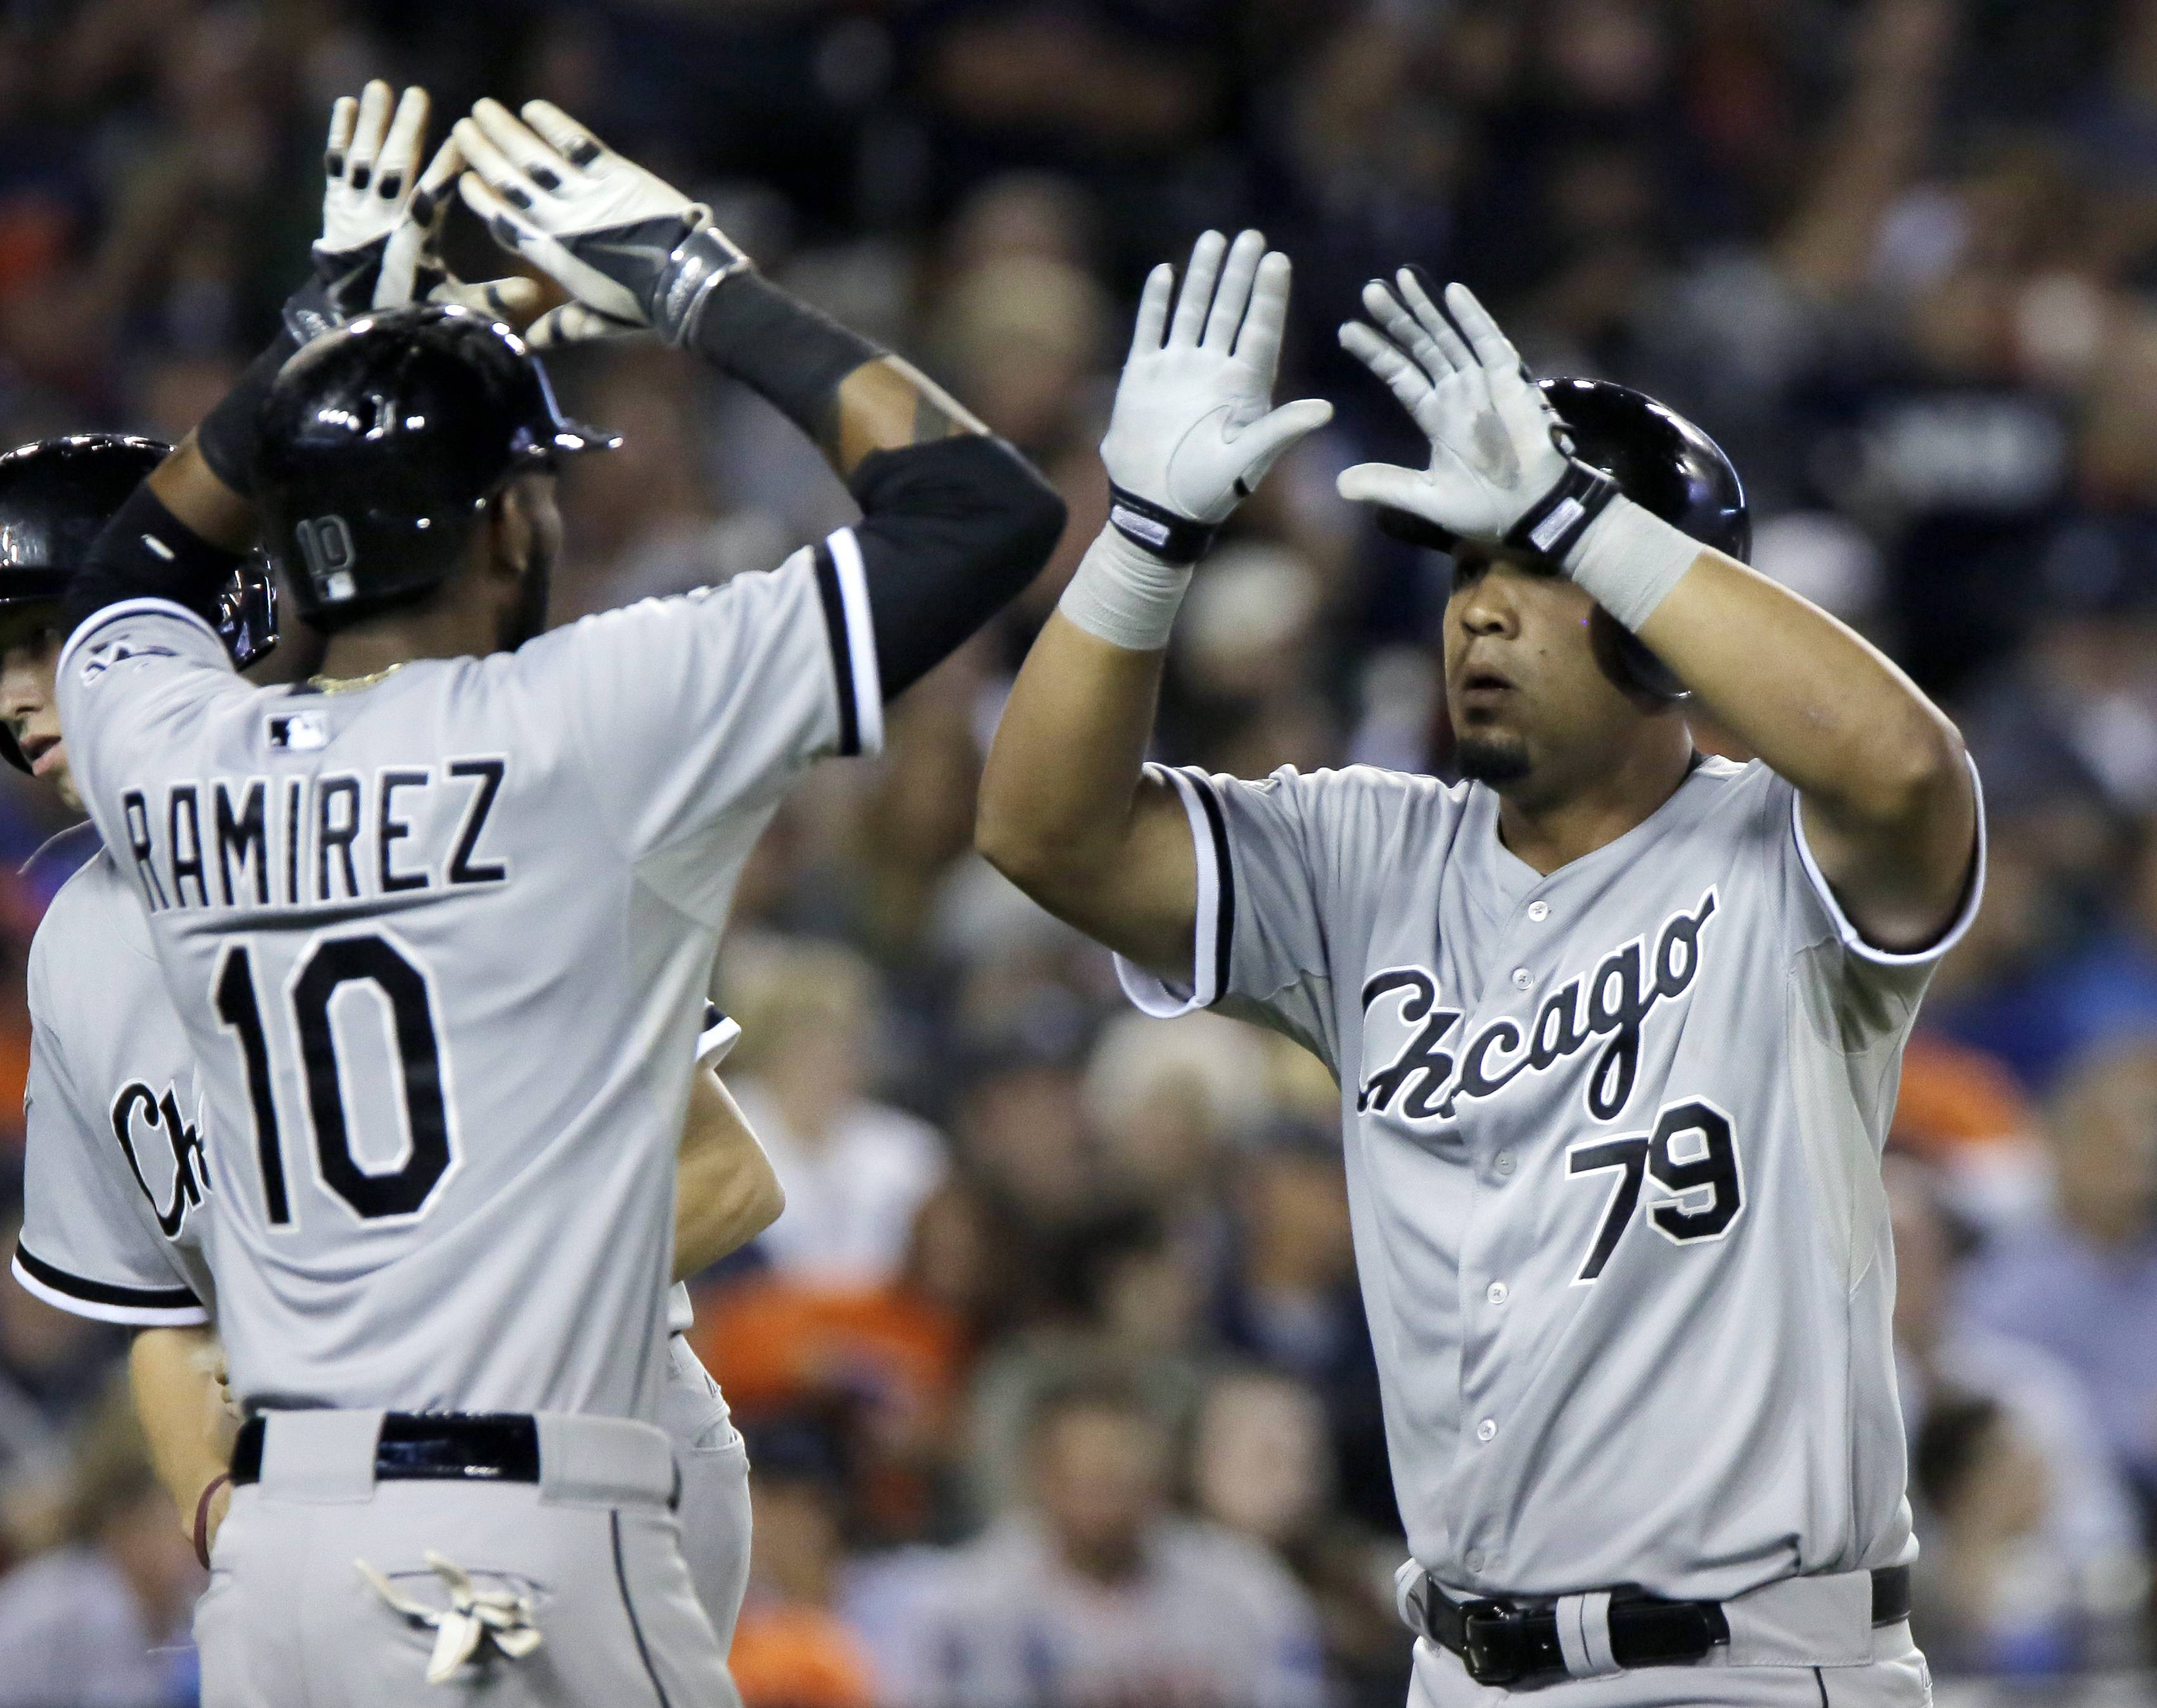 Chicago White Sox's Jose Abreu is congratulated by Alexei Ramirez after hitting a two run home run off of Detroit Tigers pitcher Joakim Soria during the seventh inning of a baseball game Tuesday, July 29, 2014, in Detroit. (AP Photo/Duane Burleson)